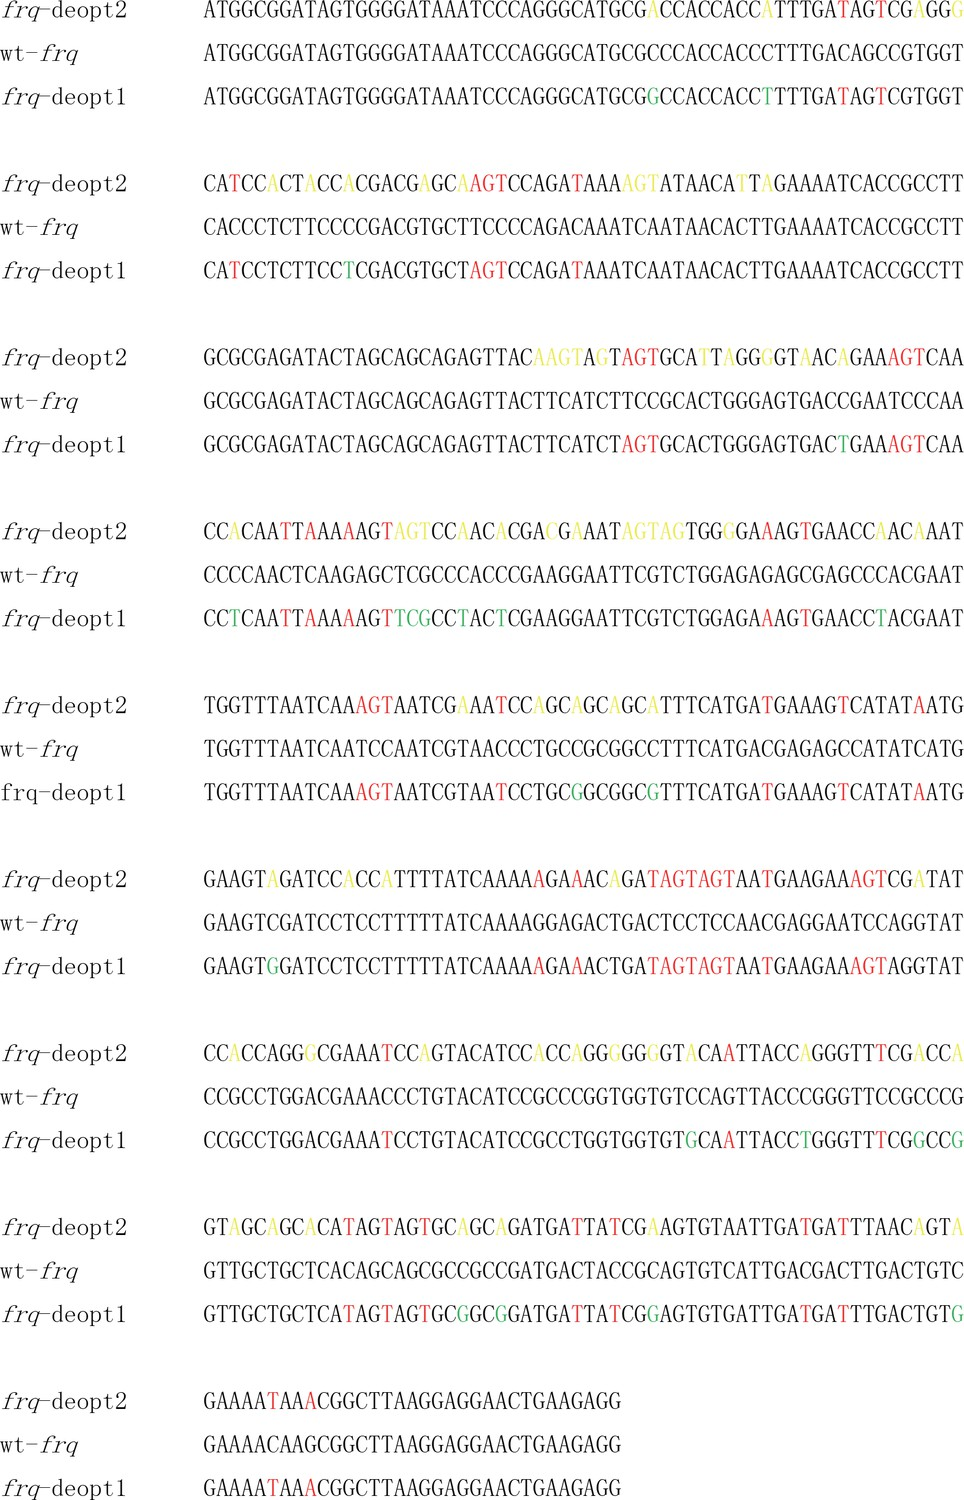 Codon usage biases co-evolve with transcription termination ...